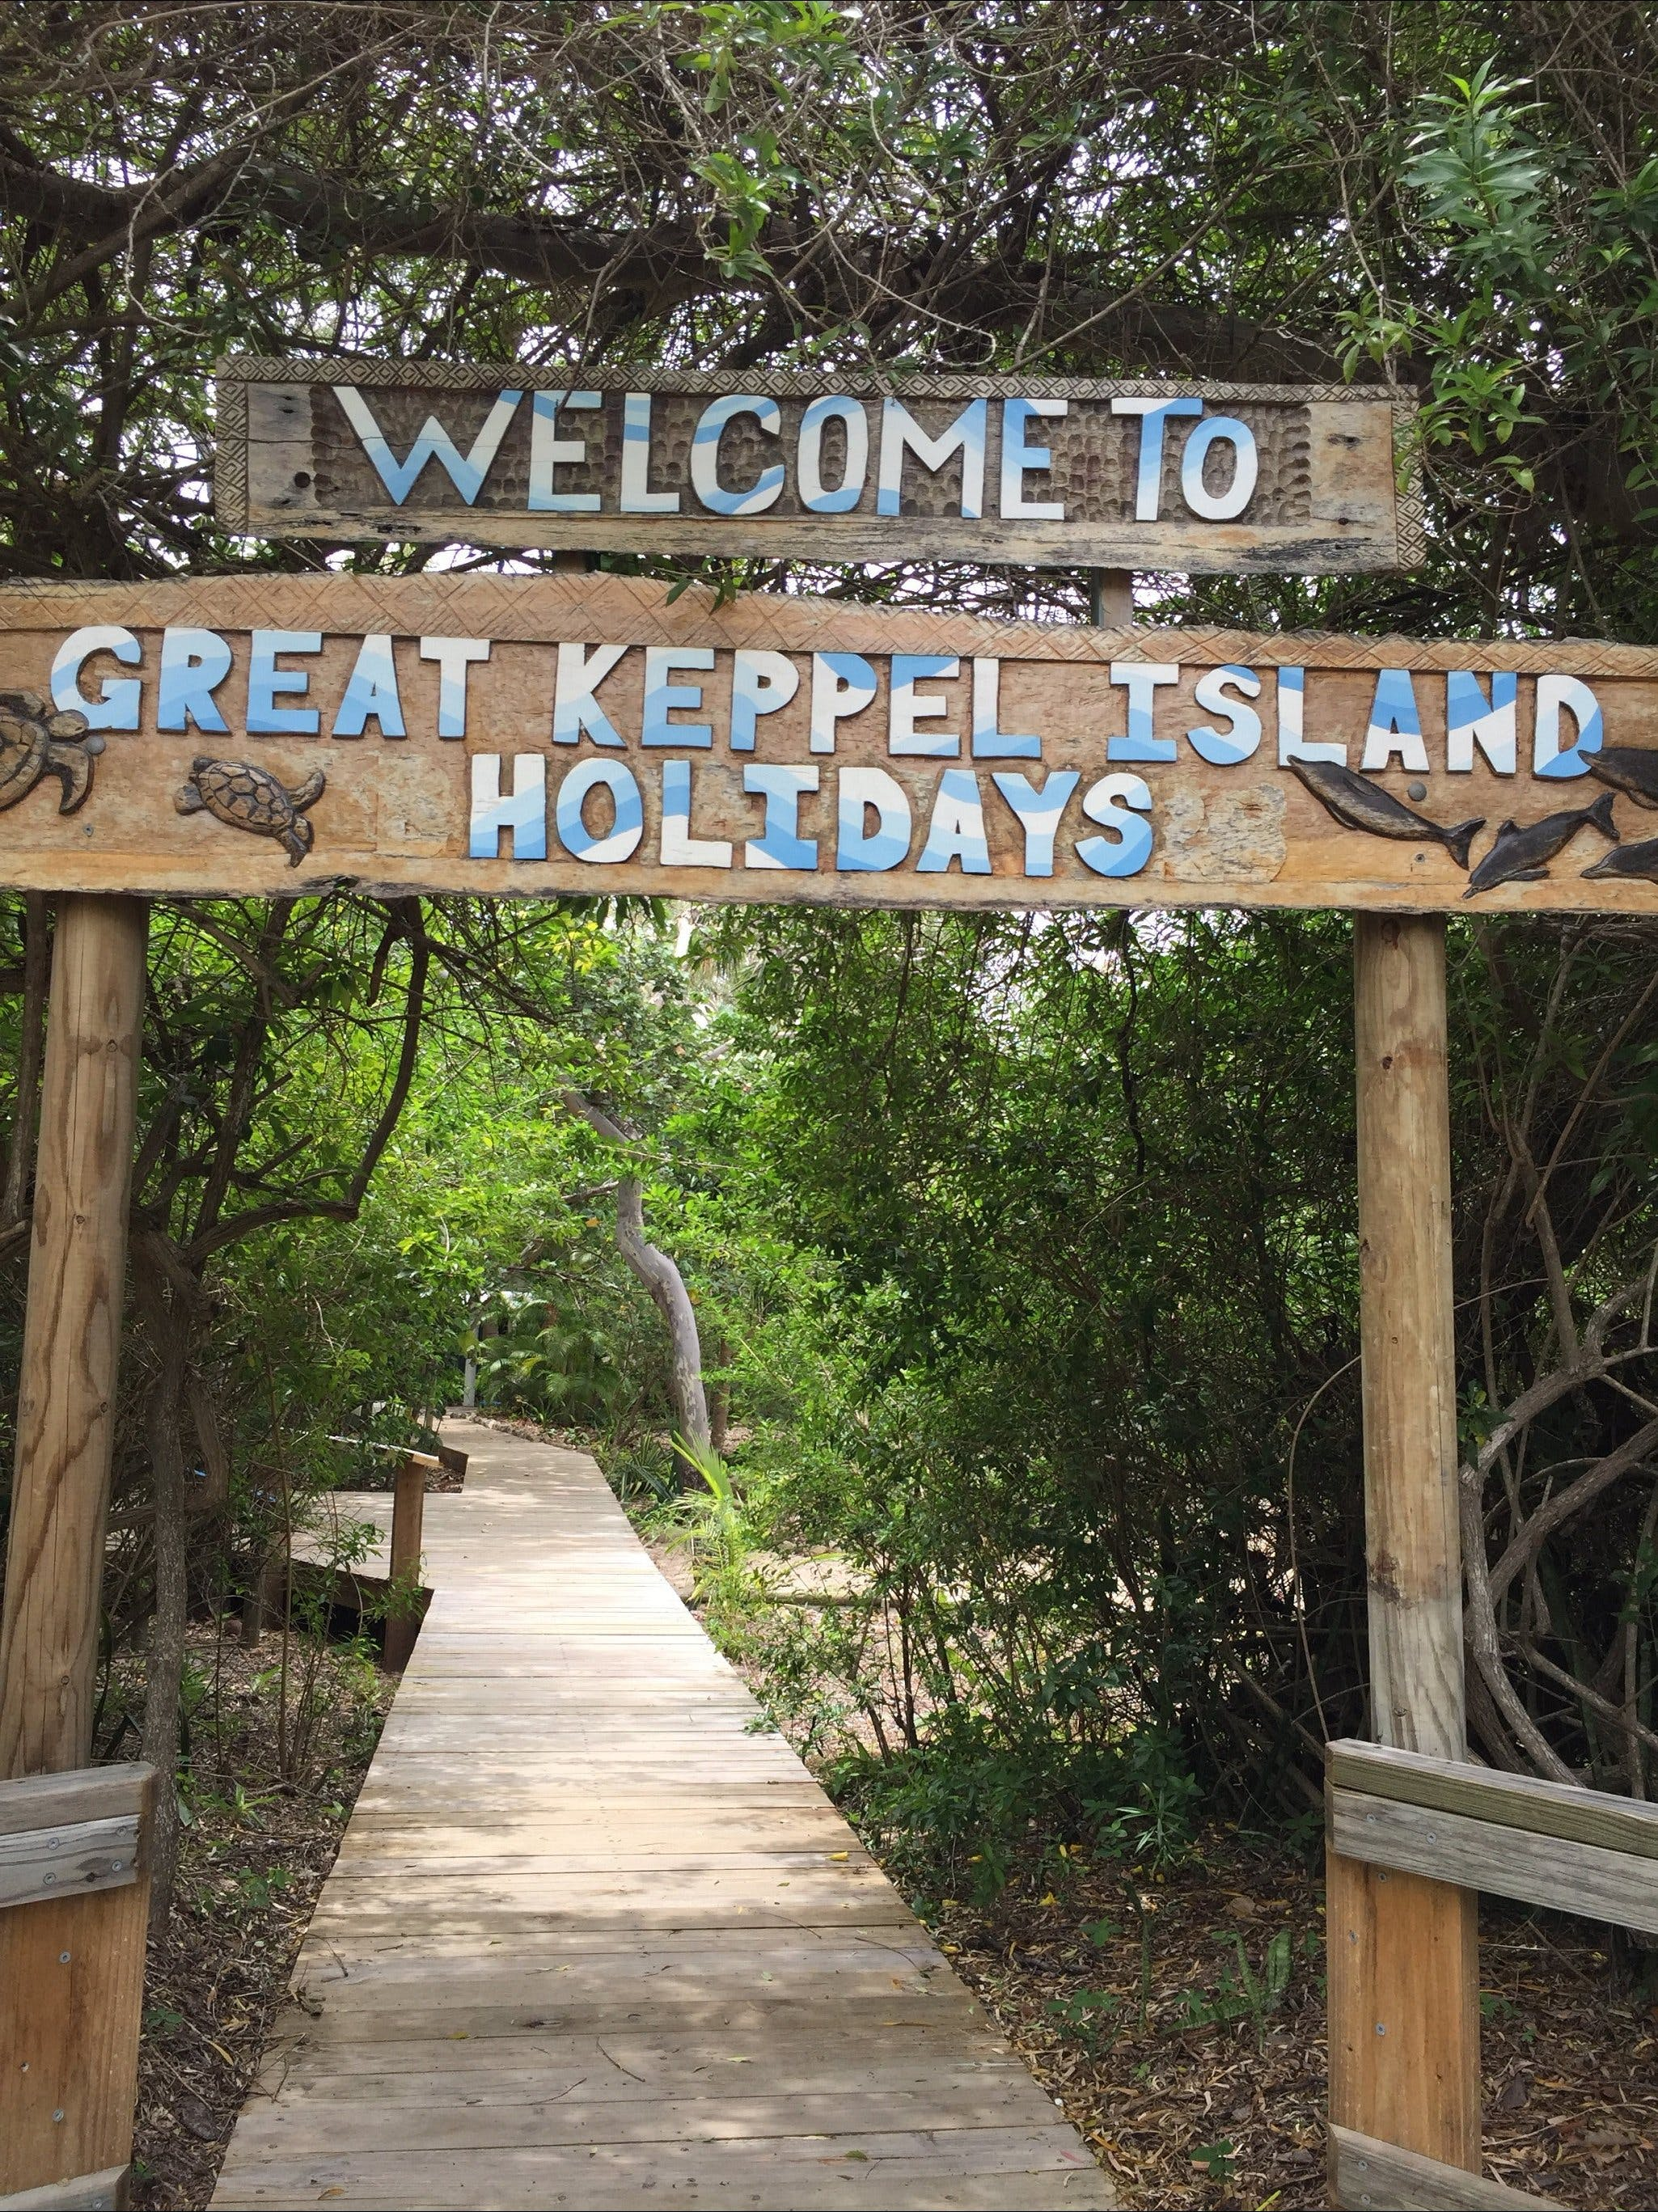 Great Keppel Island Holiday Village - South Australia Travel